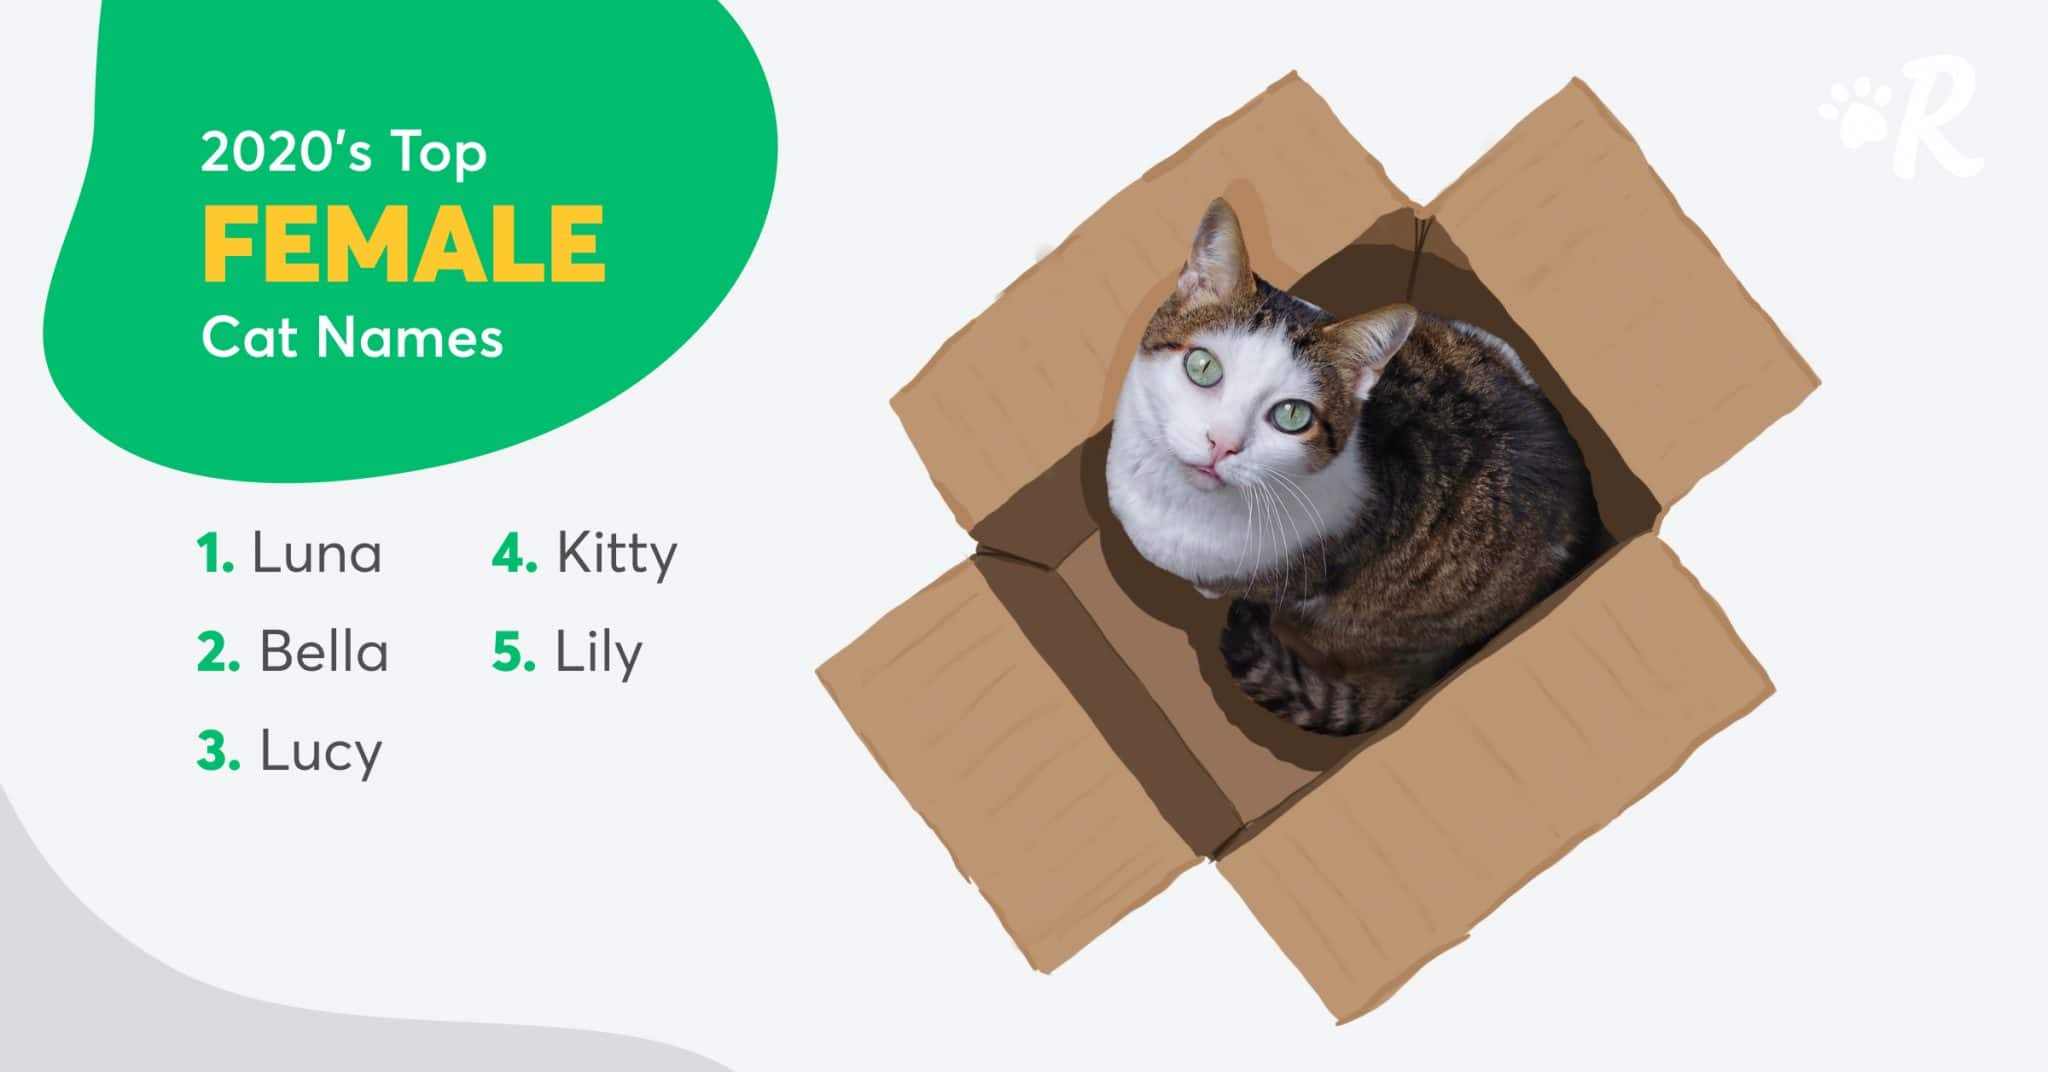 Graphic of the top 5 most popular female cat names: Luna, Bella, Lucy, Kitty and Lily